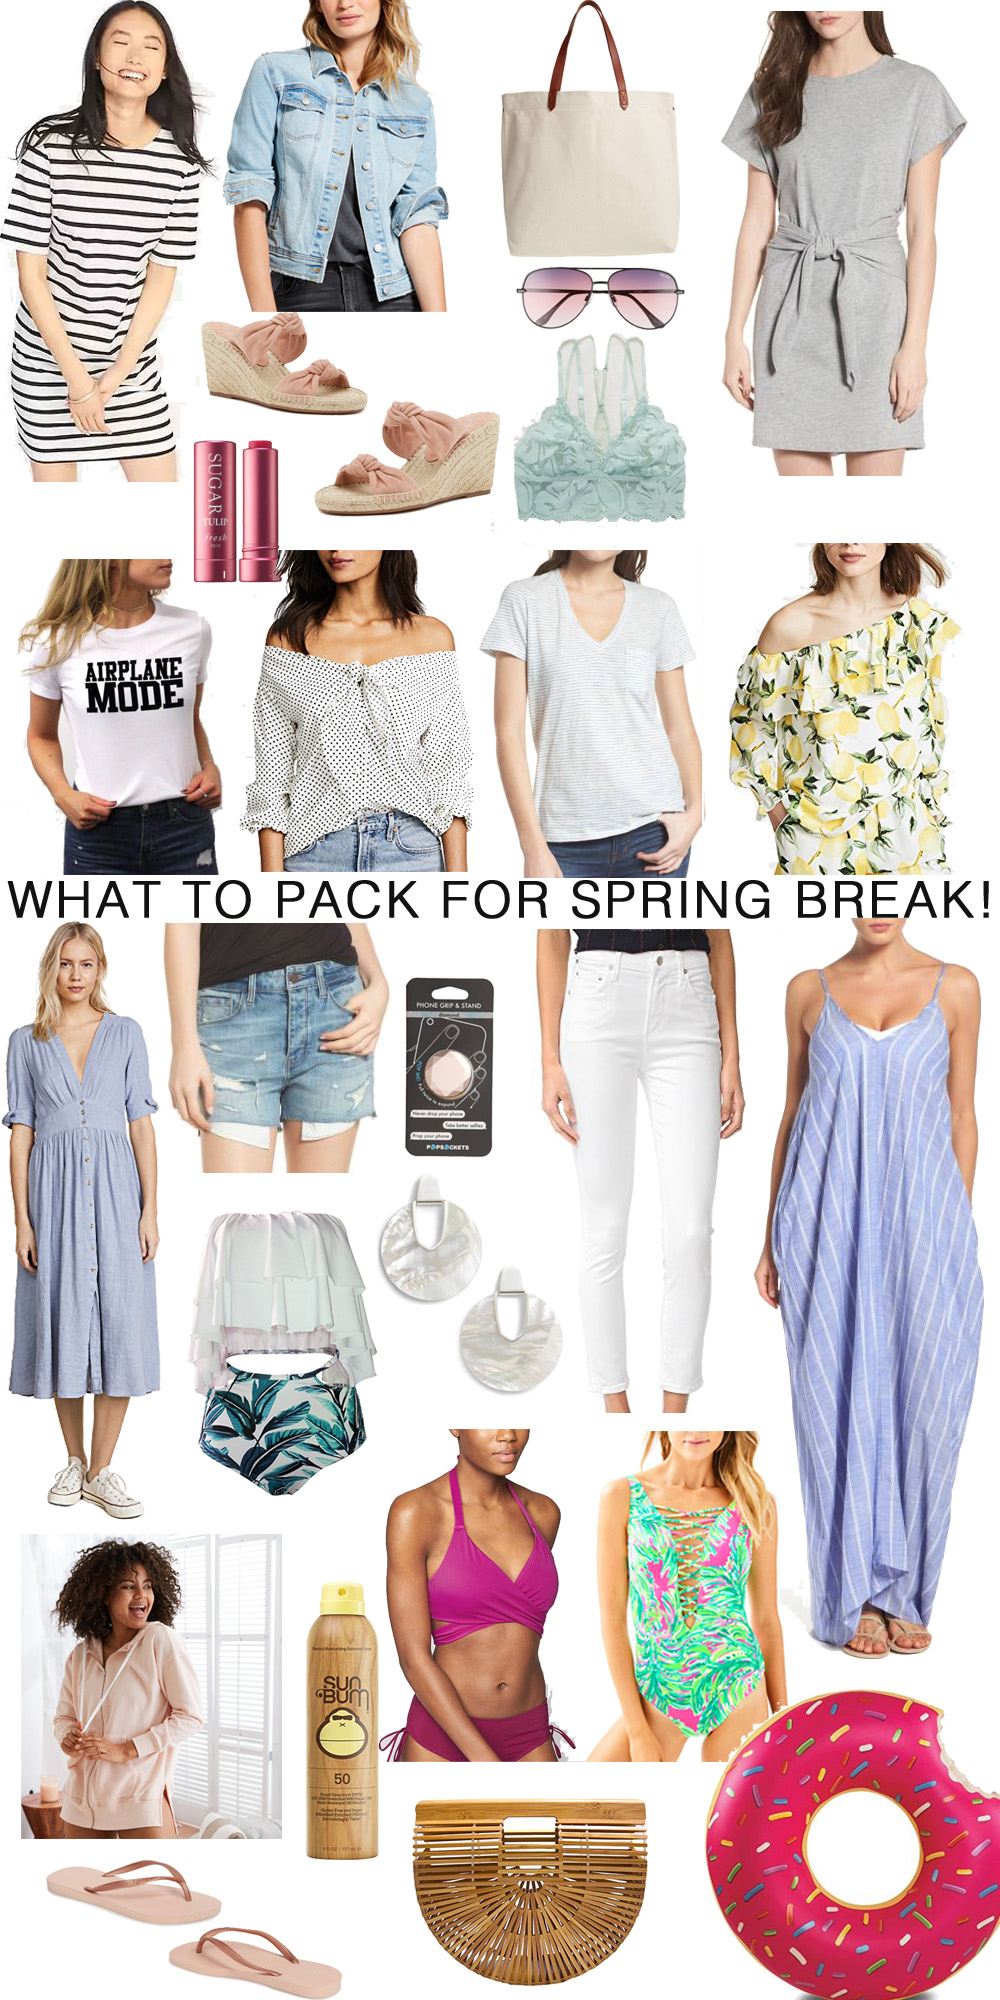 What to pack for spring break 2018 // the modern savvy, a life and style blog for the contemporary girl - The Ultimate Spring Break Checklist by popular Florida fashion blogger The Modern Savvy